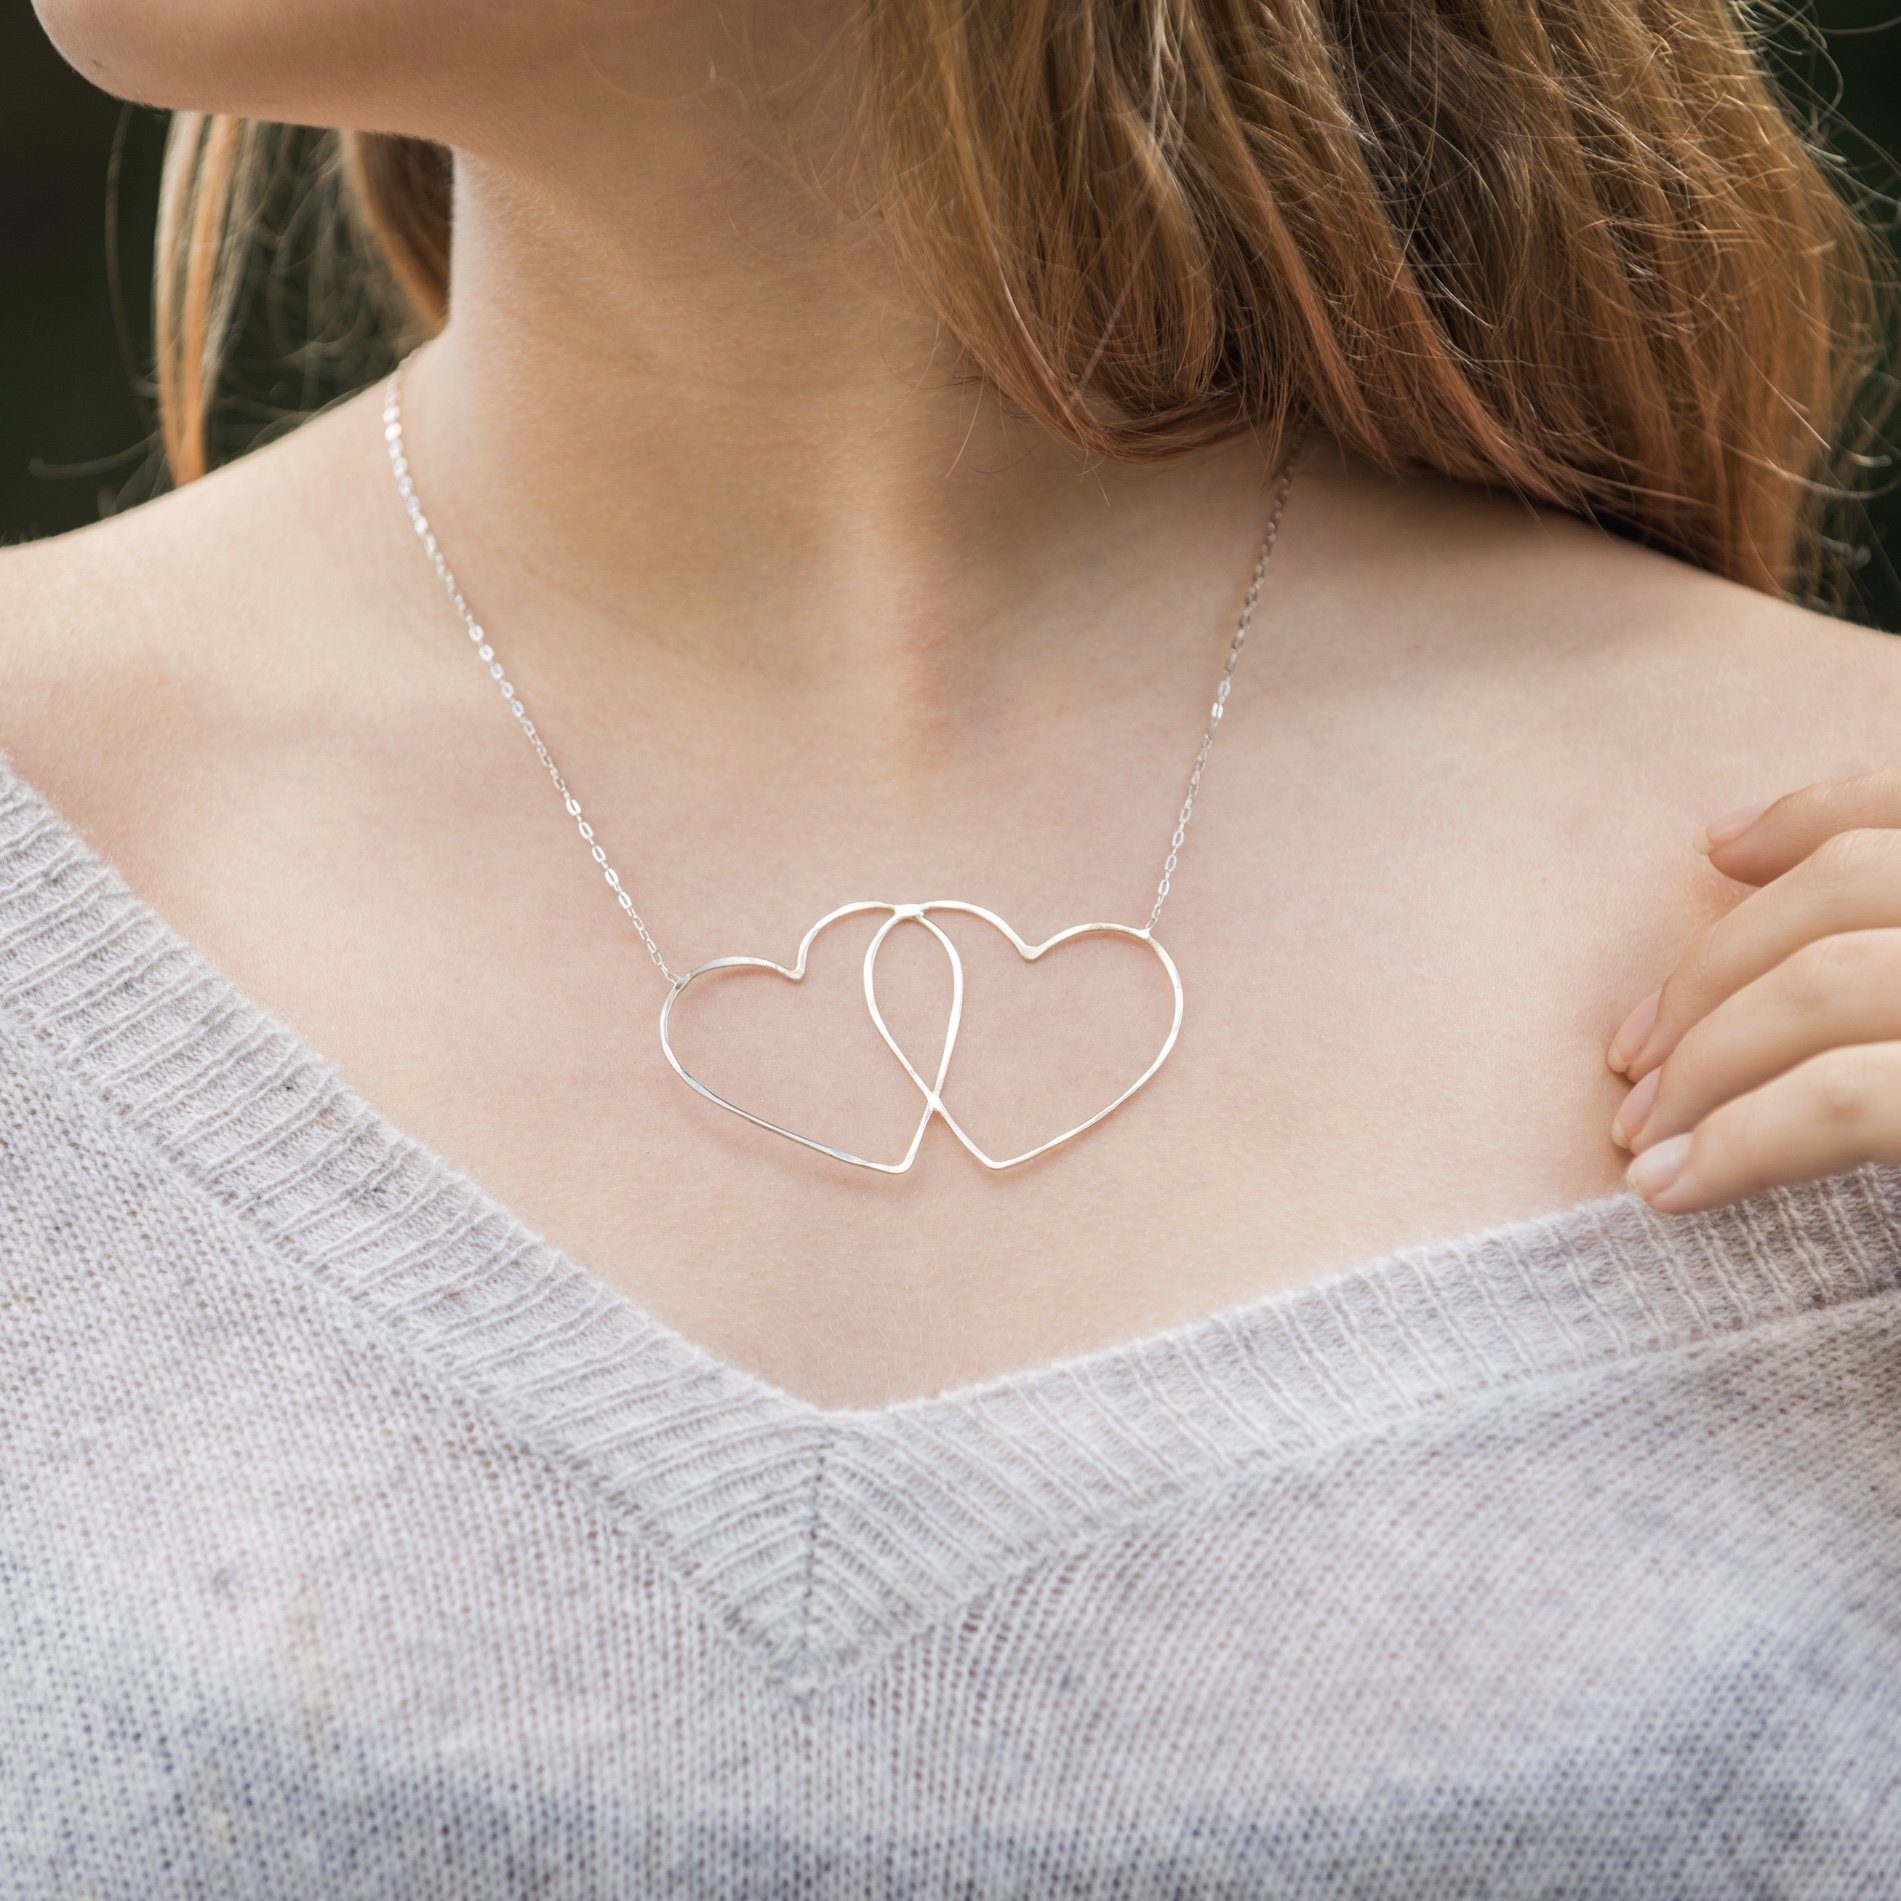 You may also like - Lisa Rueff Double Heart Necklace